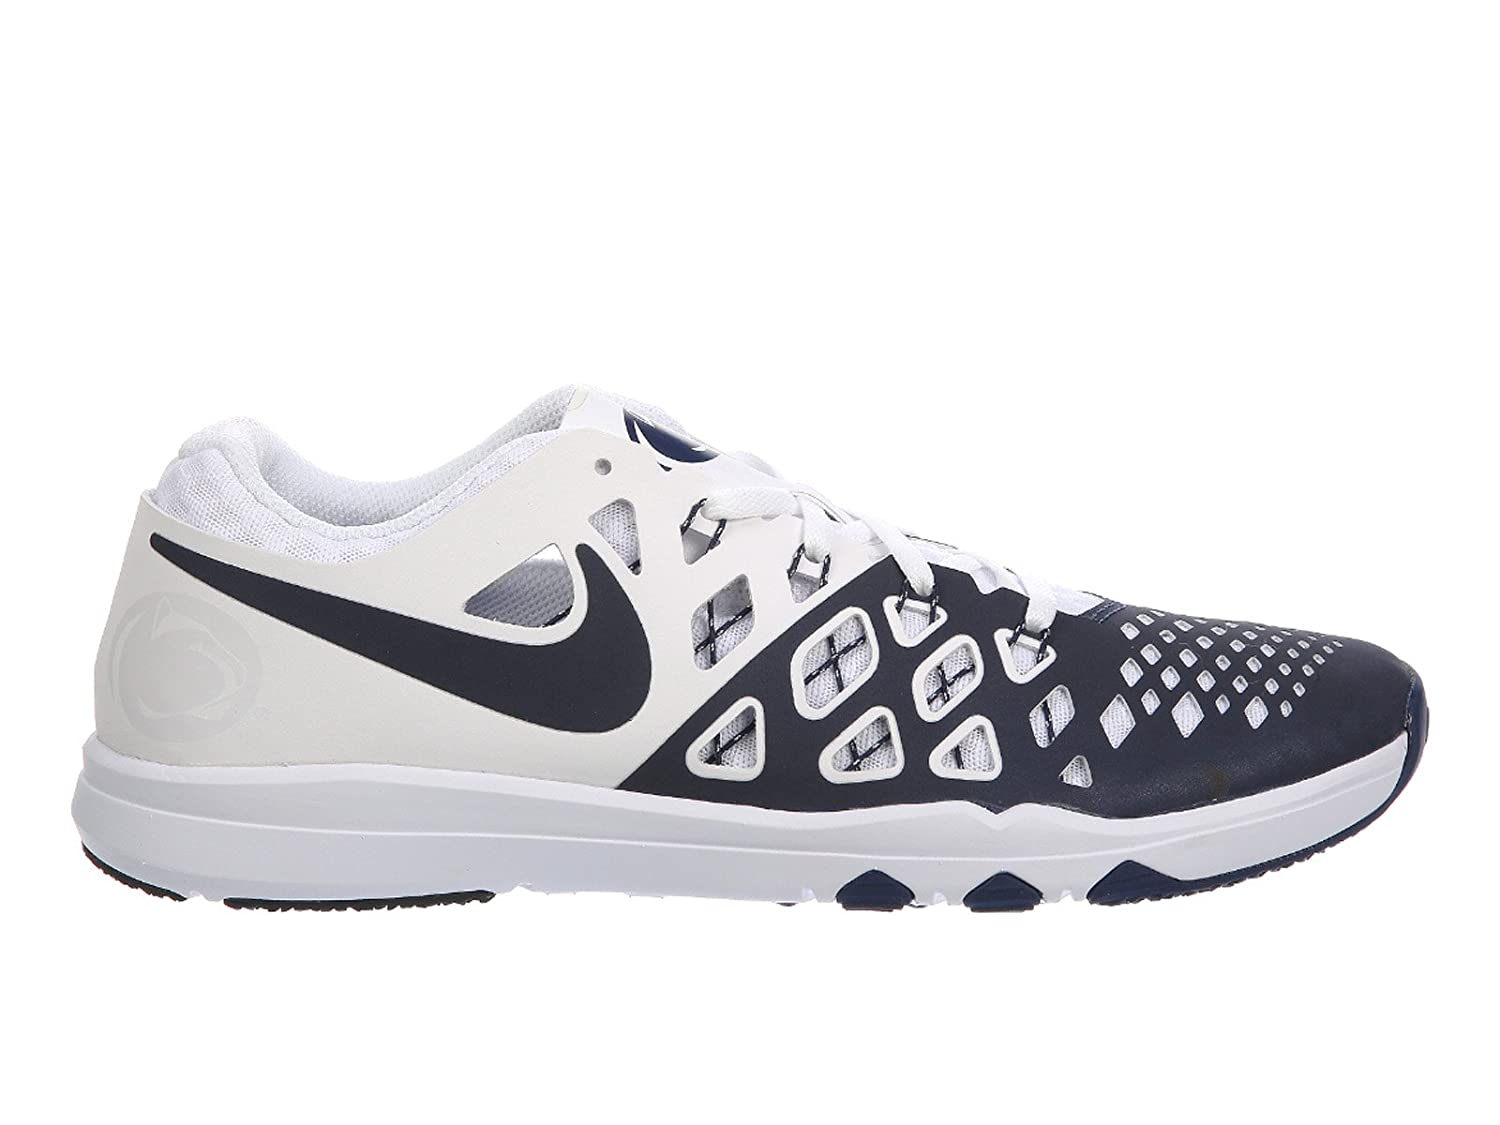 NIKE Men's Train Speed 4 Running Shoe B073NQC9C9 6 D(M) US|White Navy Blue